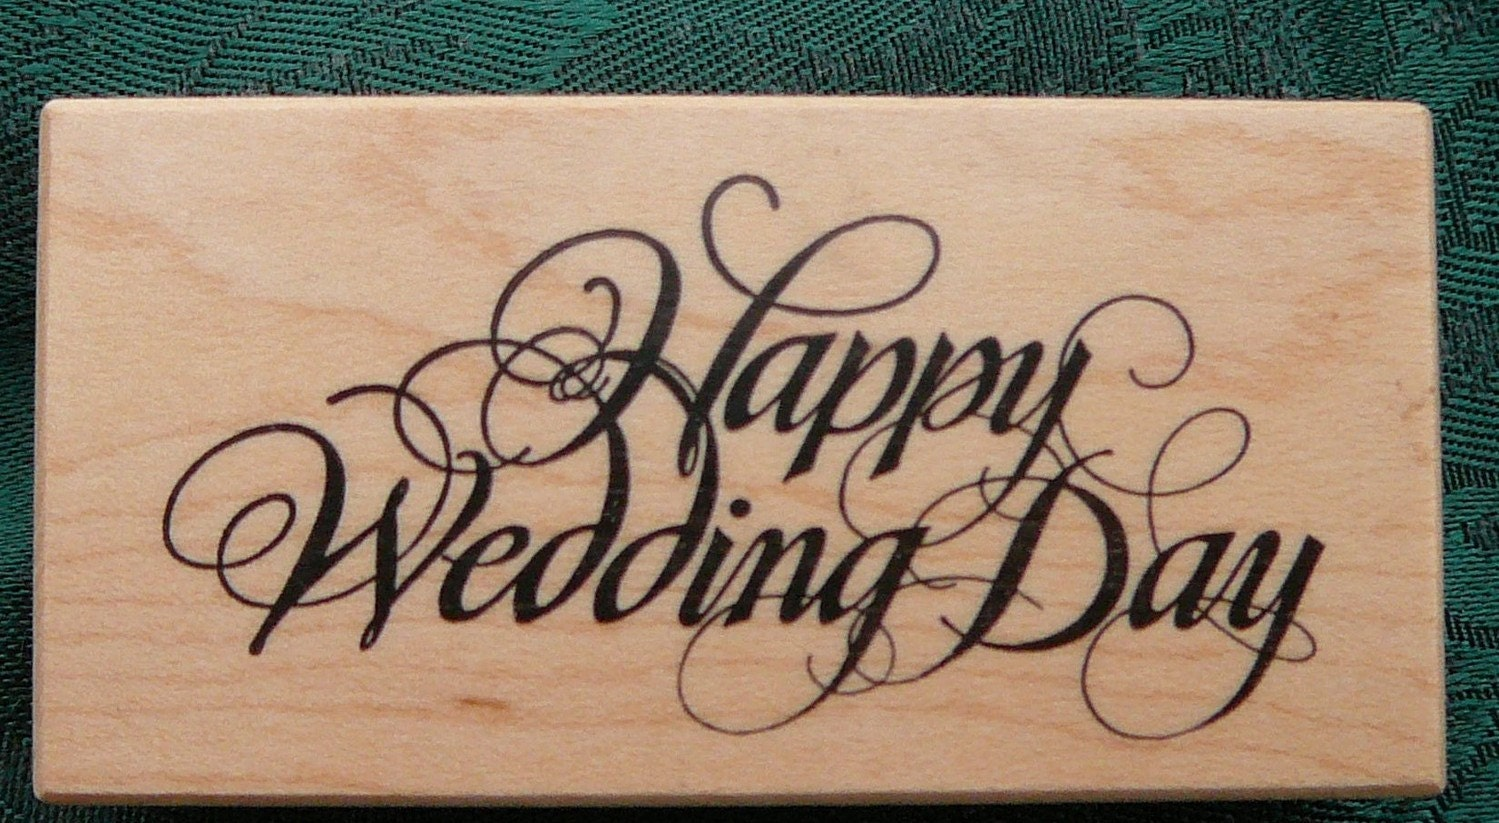 Happy wedding day psx rubber stamp new for Wedding dress rubber stamp